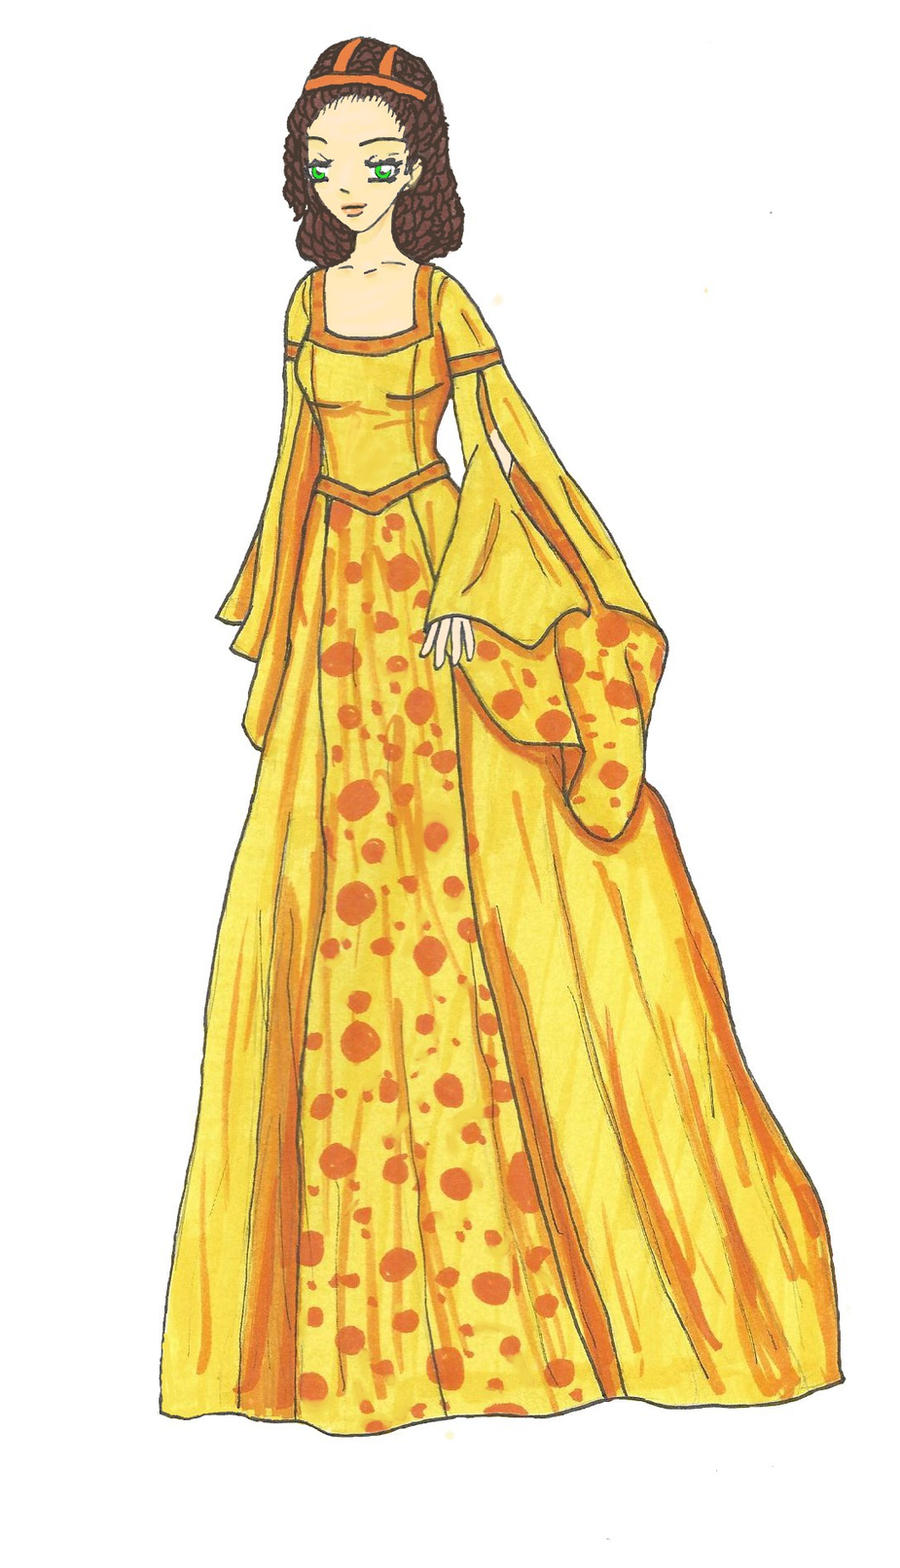 Old Fashioned Style Orange Dress By Bryony Chan On Deviantart